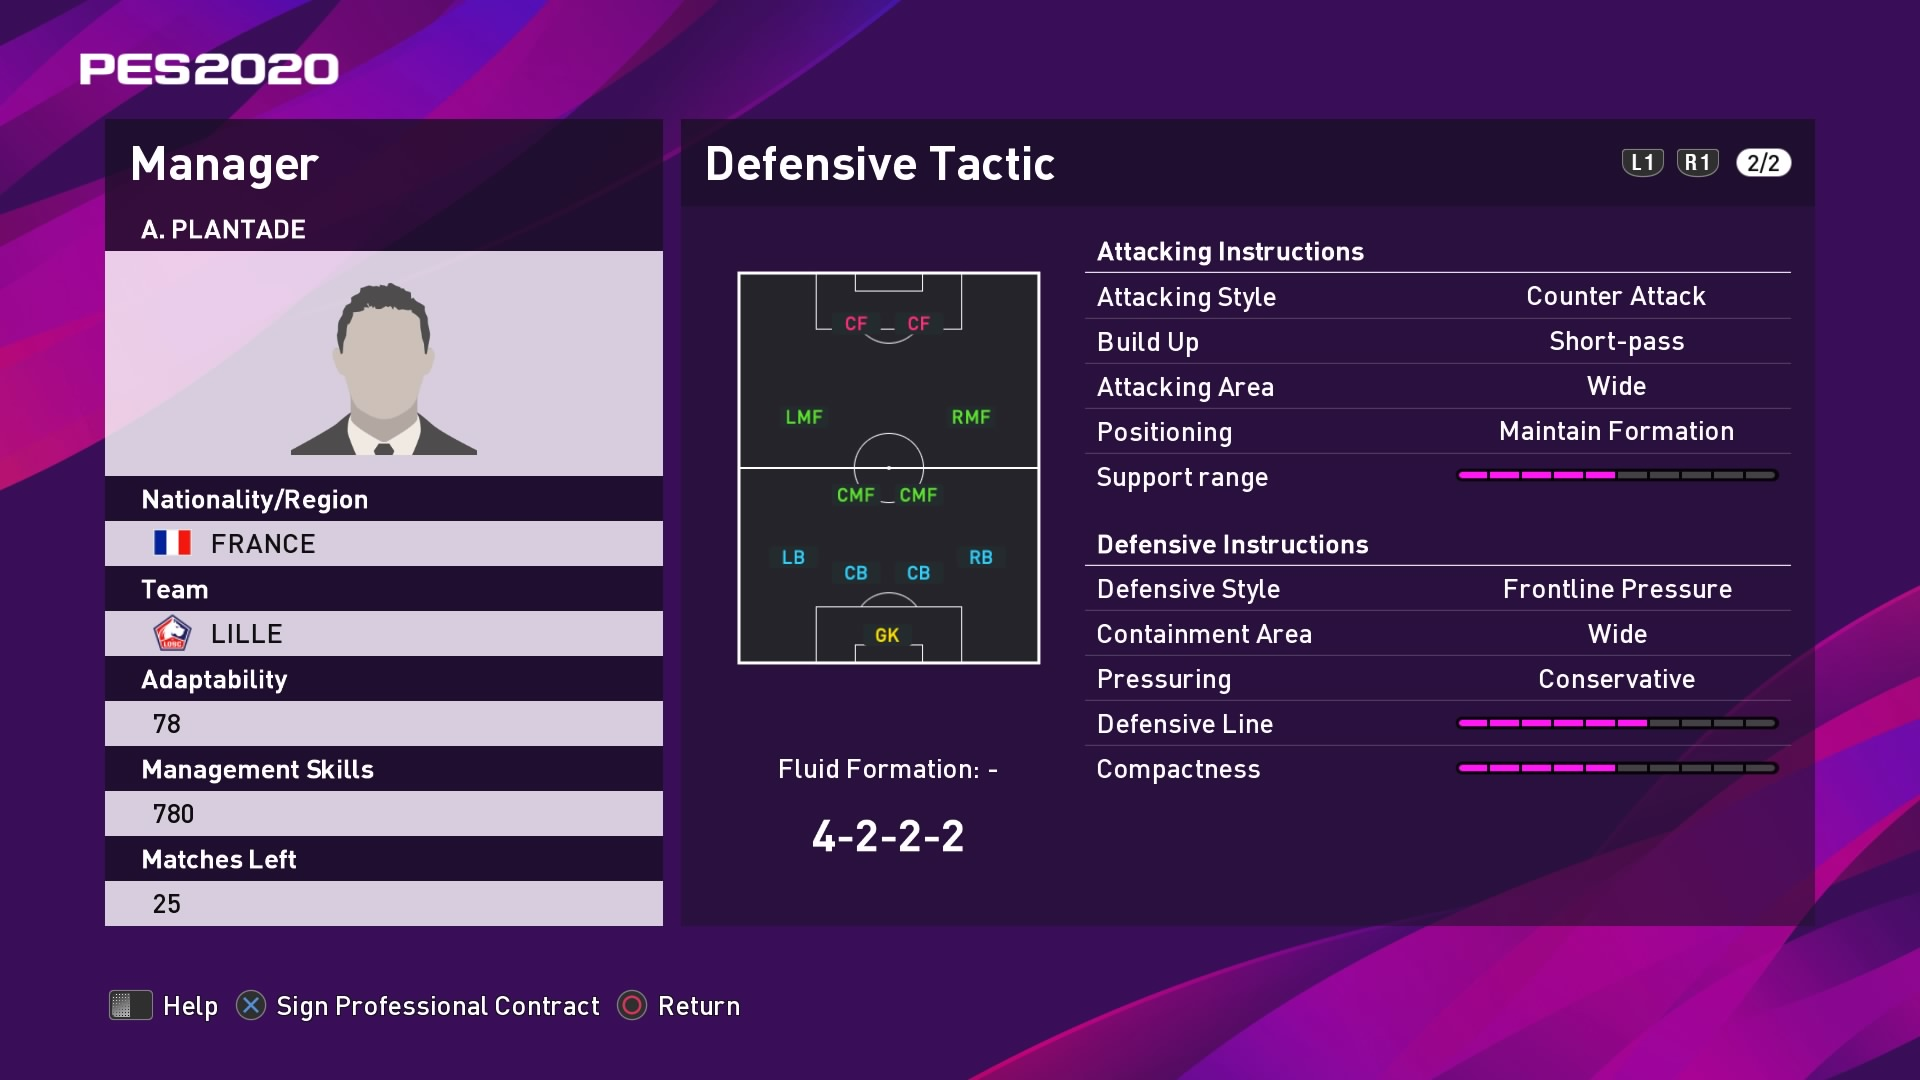 A. Plantade (Christophe Galtier) Defensive Tactic in PES 2020 myClub